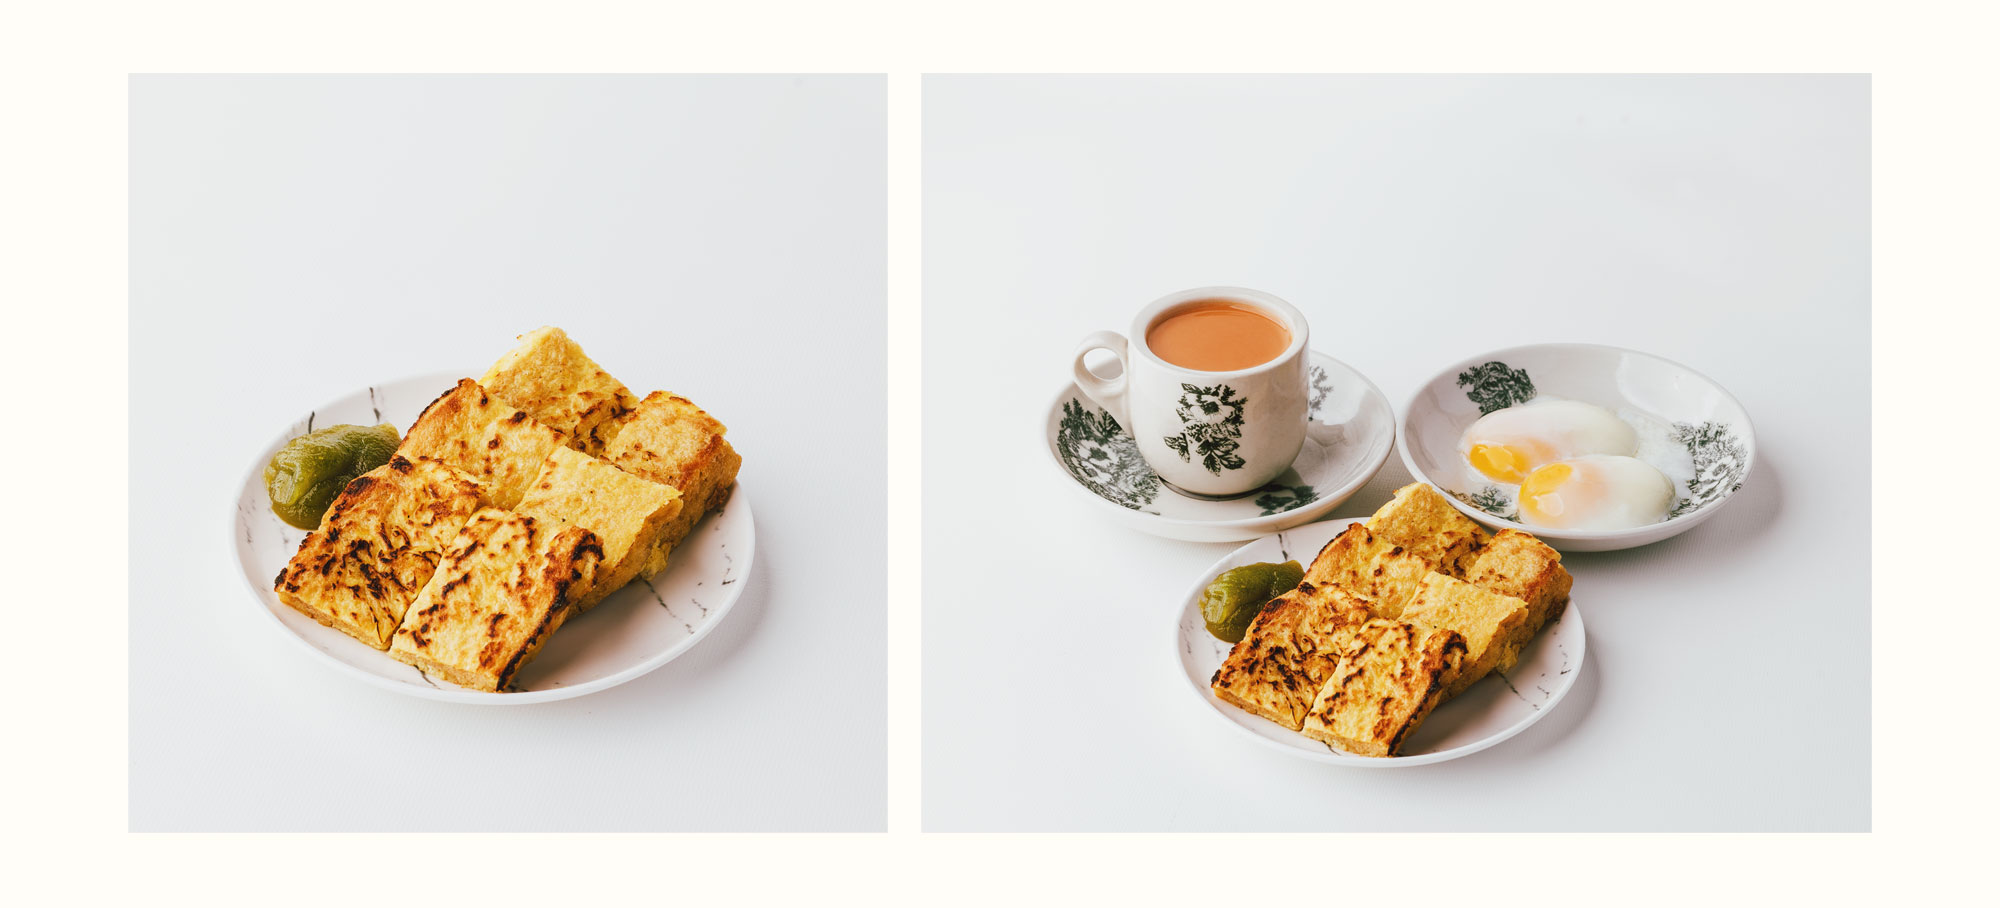 Food photography for Toast Hut - one of my favourite breakfast places